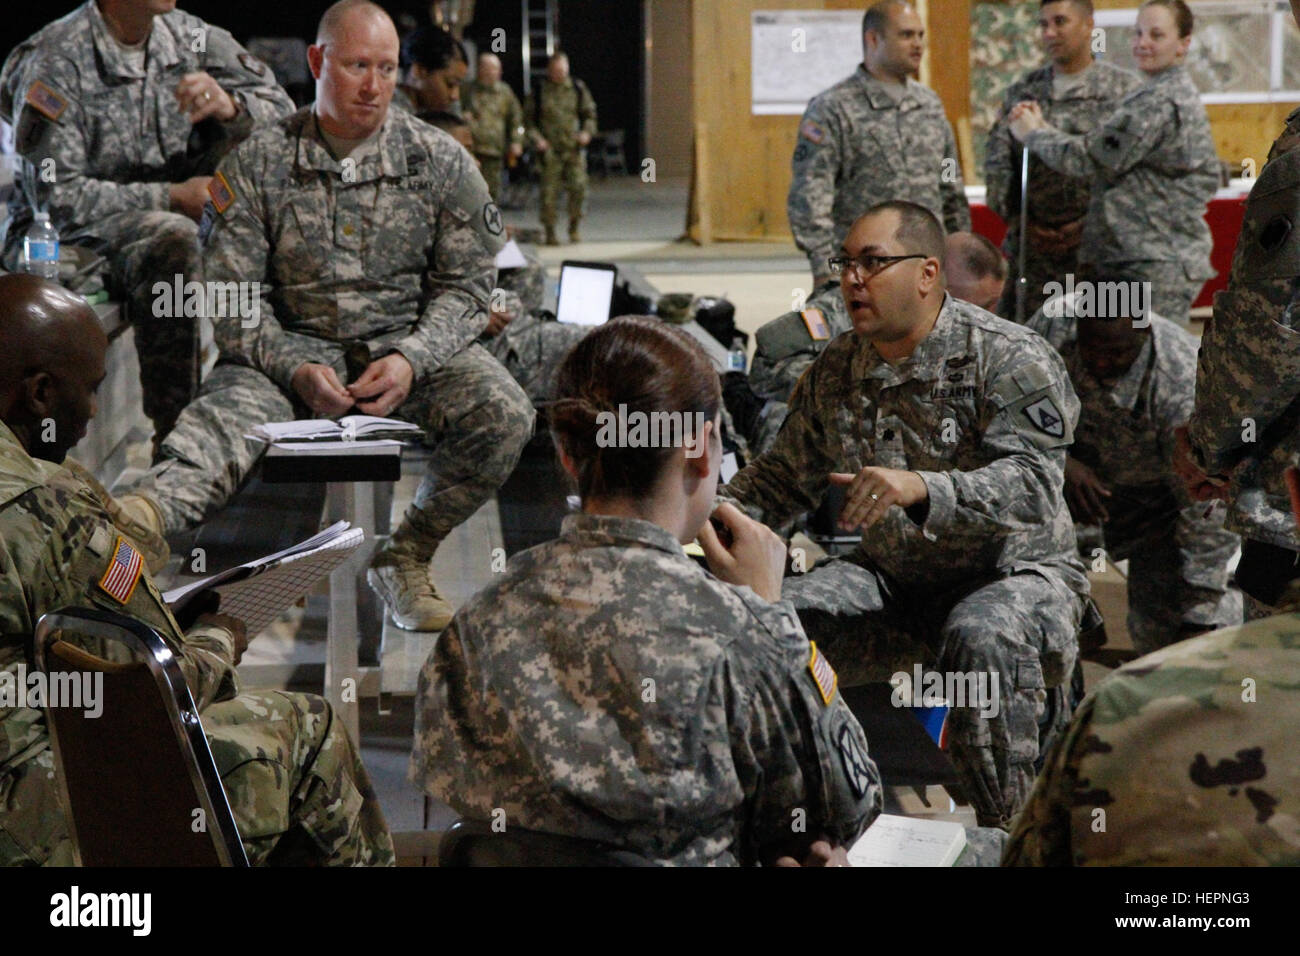 Jonathan Funk 91st Training Division Discusses Procedures For Medical Care During The Upcoming Combat Exercises On Fort Hunter Liggett Calif Feb